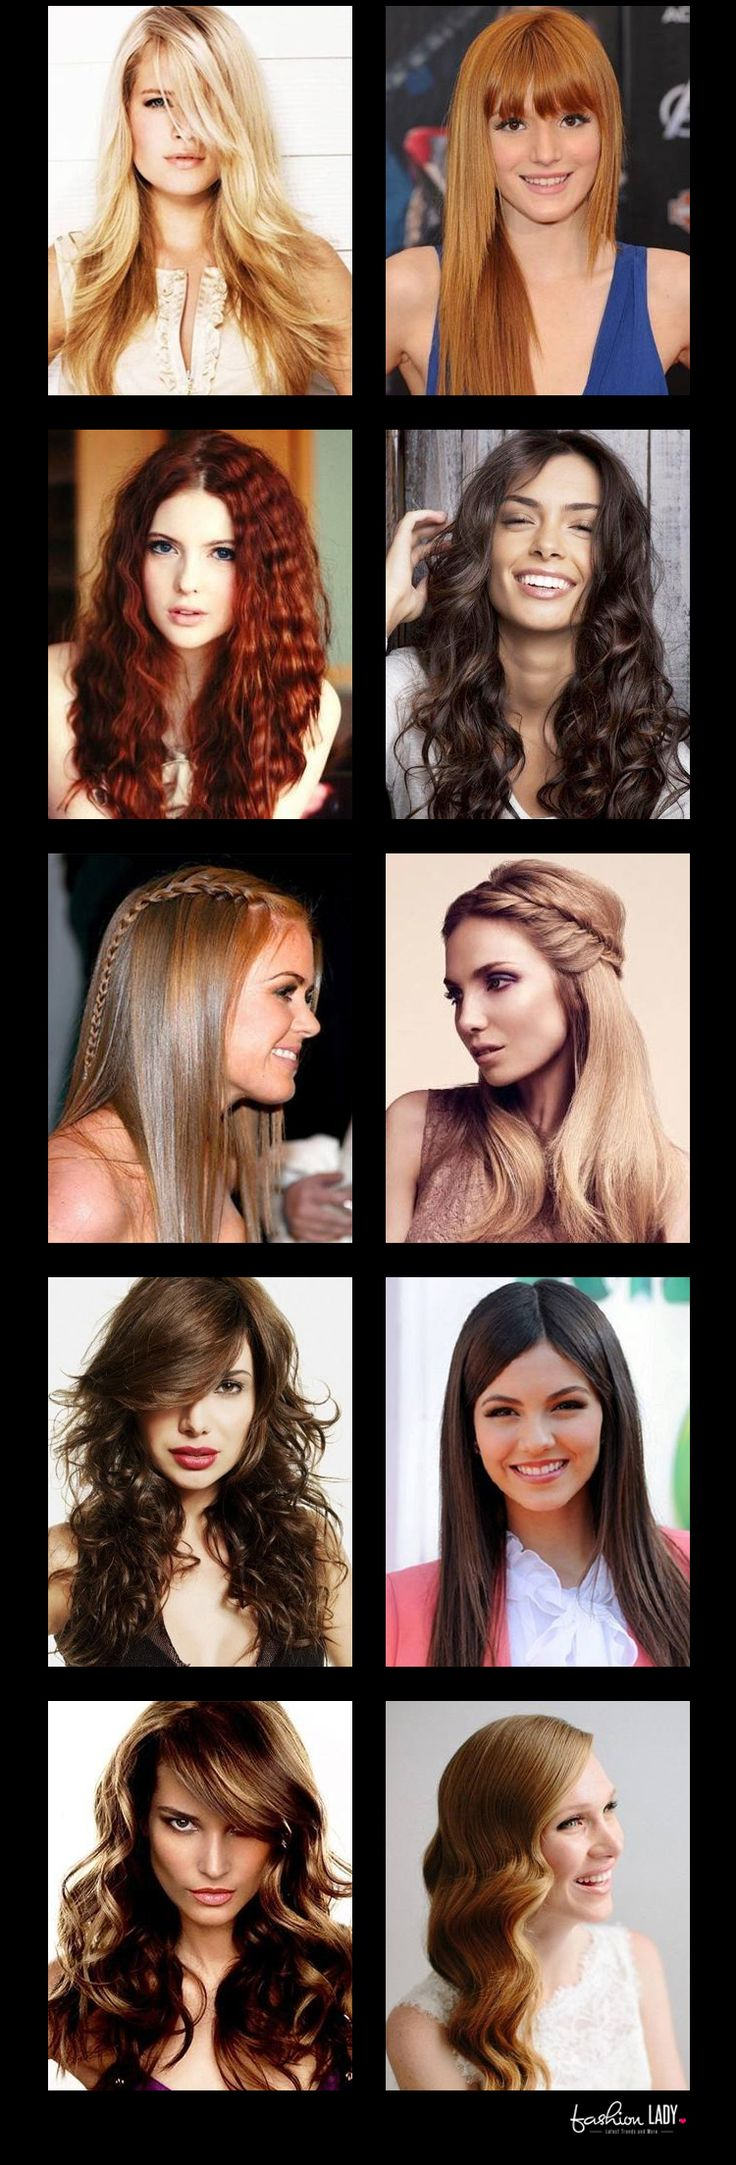 Top 30 Amazing Hairstyling Ideas with Feather Cut – Long, Medium & Short